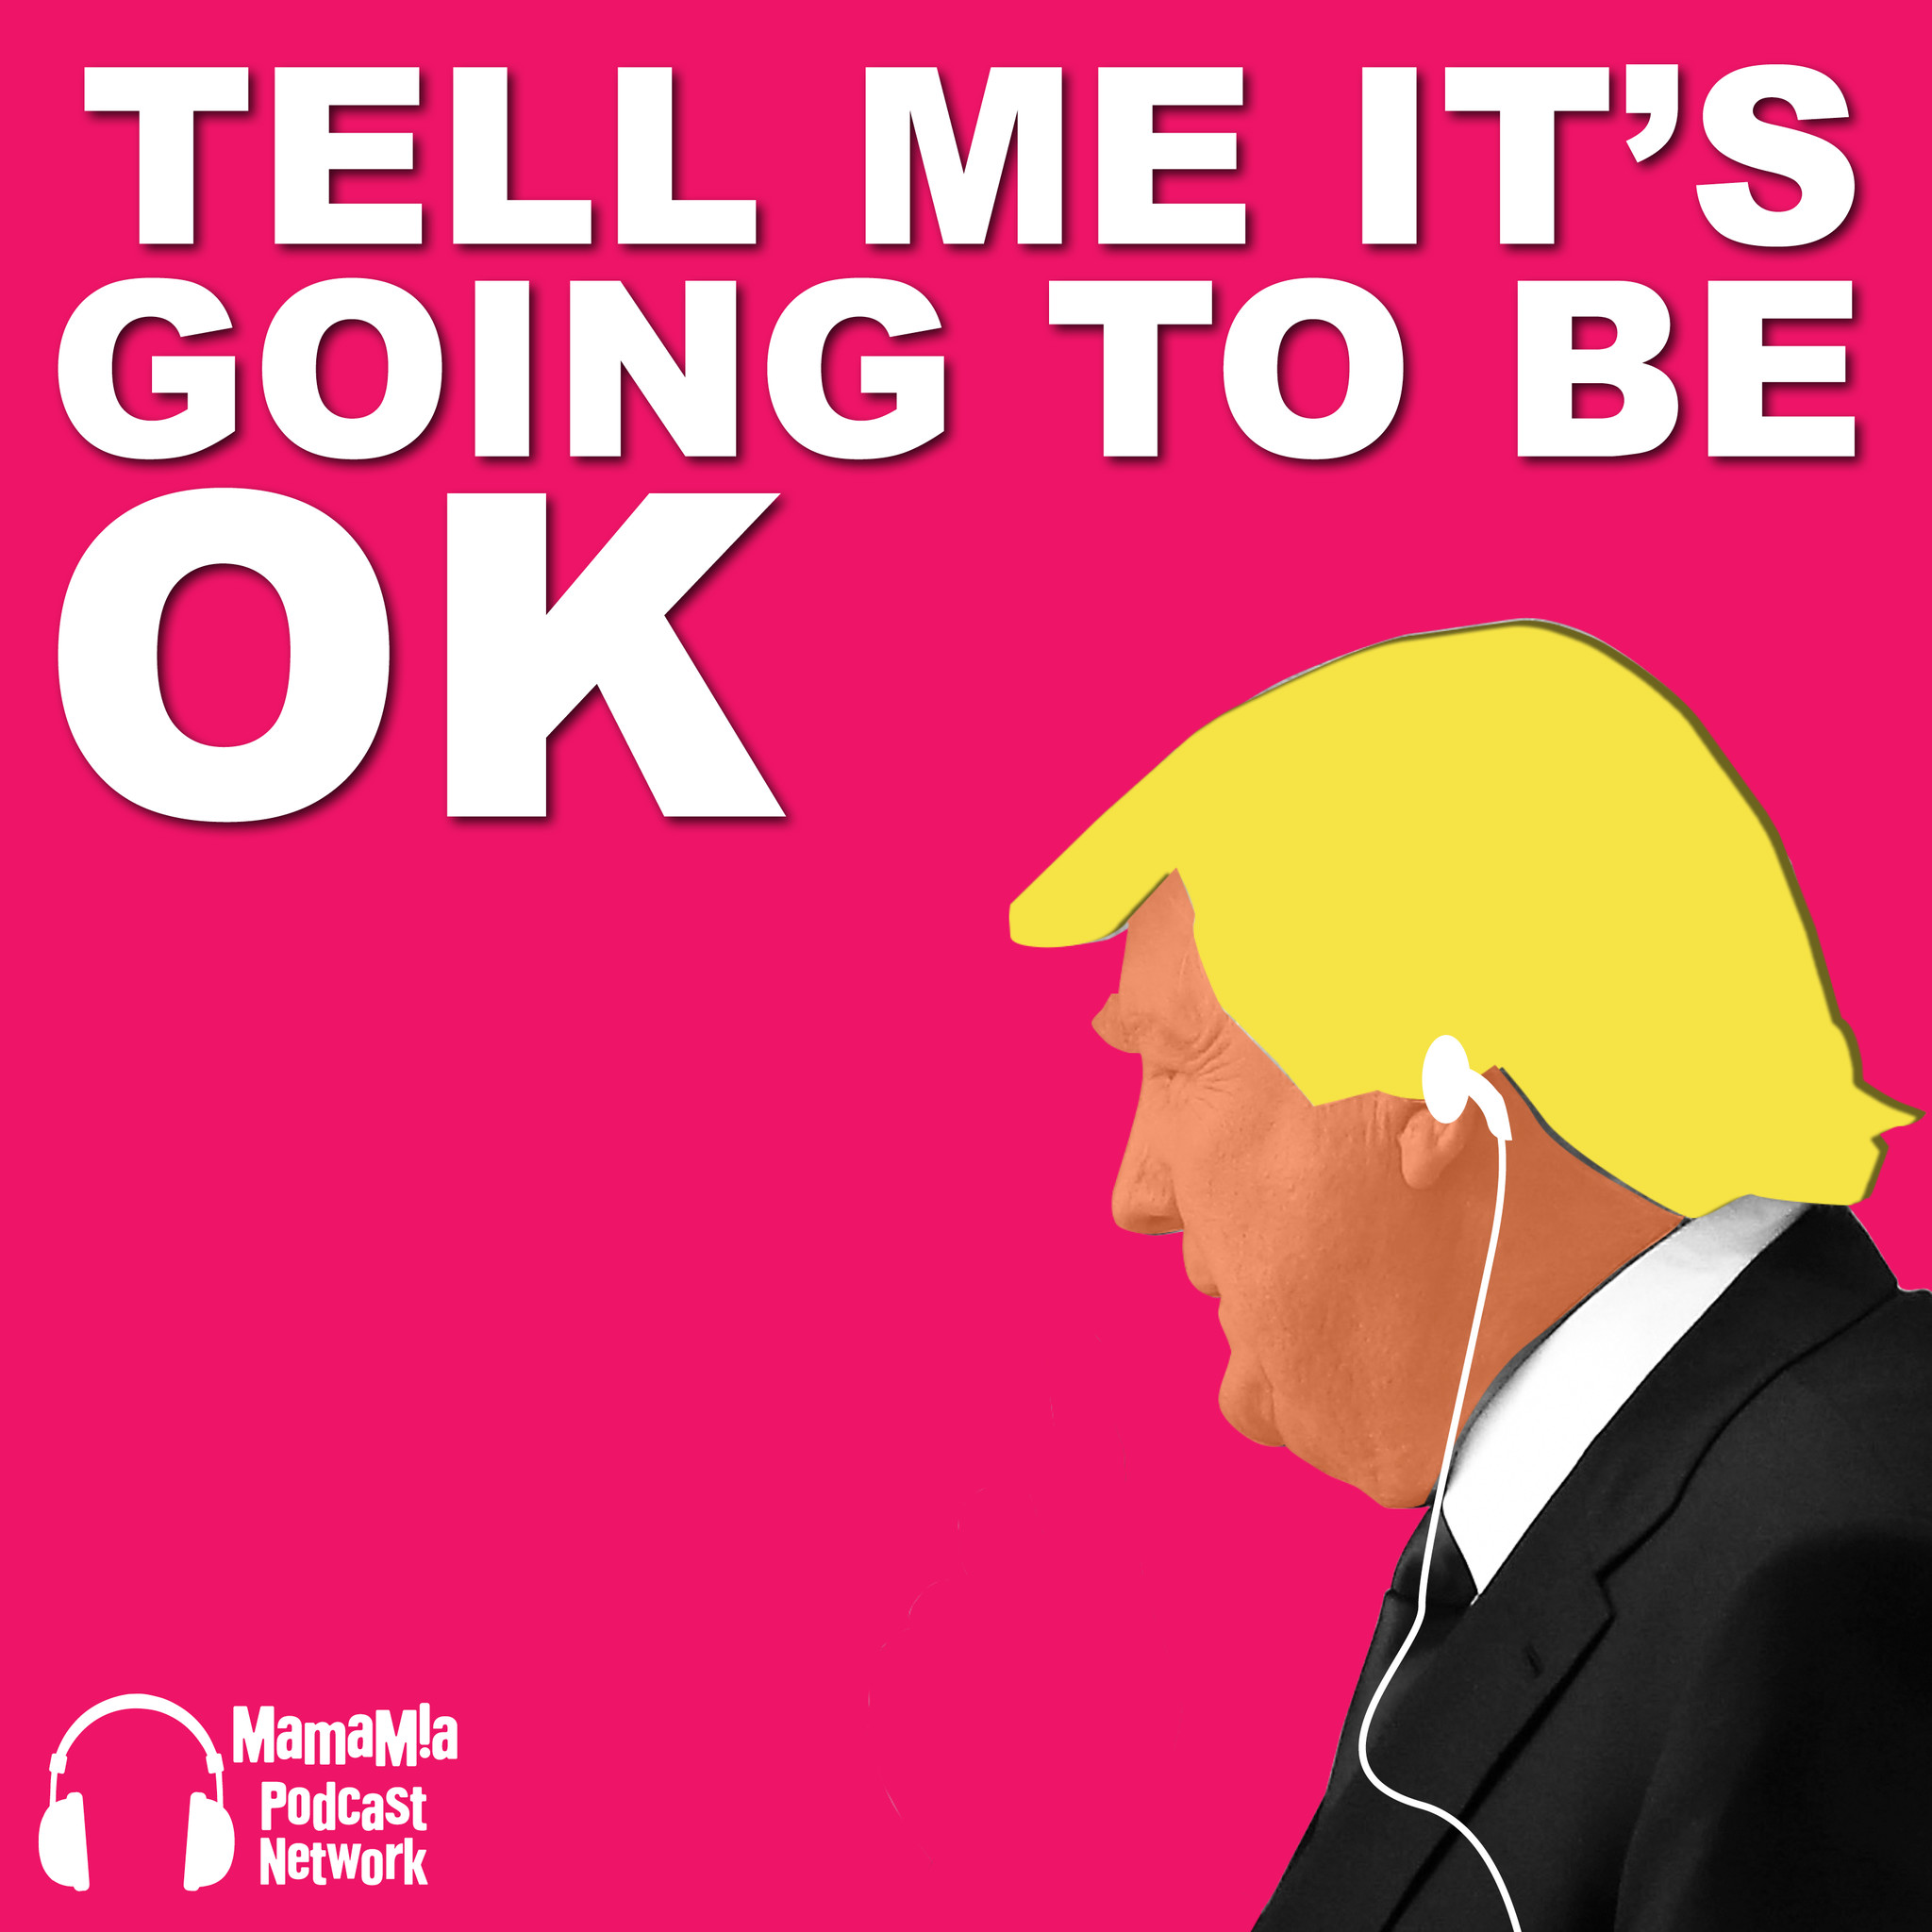 tell me it's going to be ok podcast review.jpg